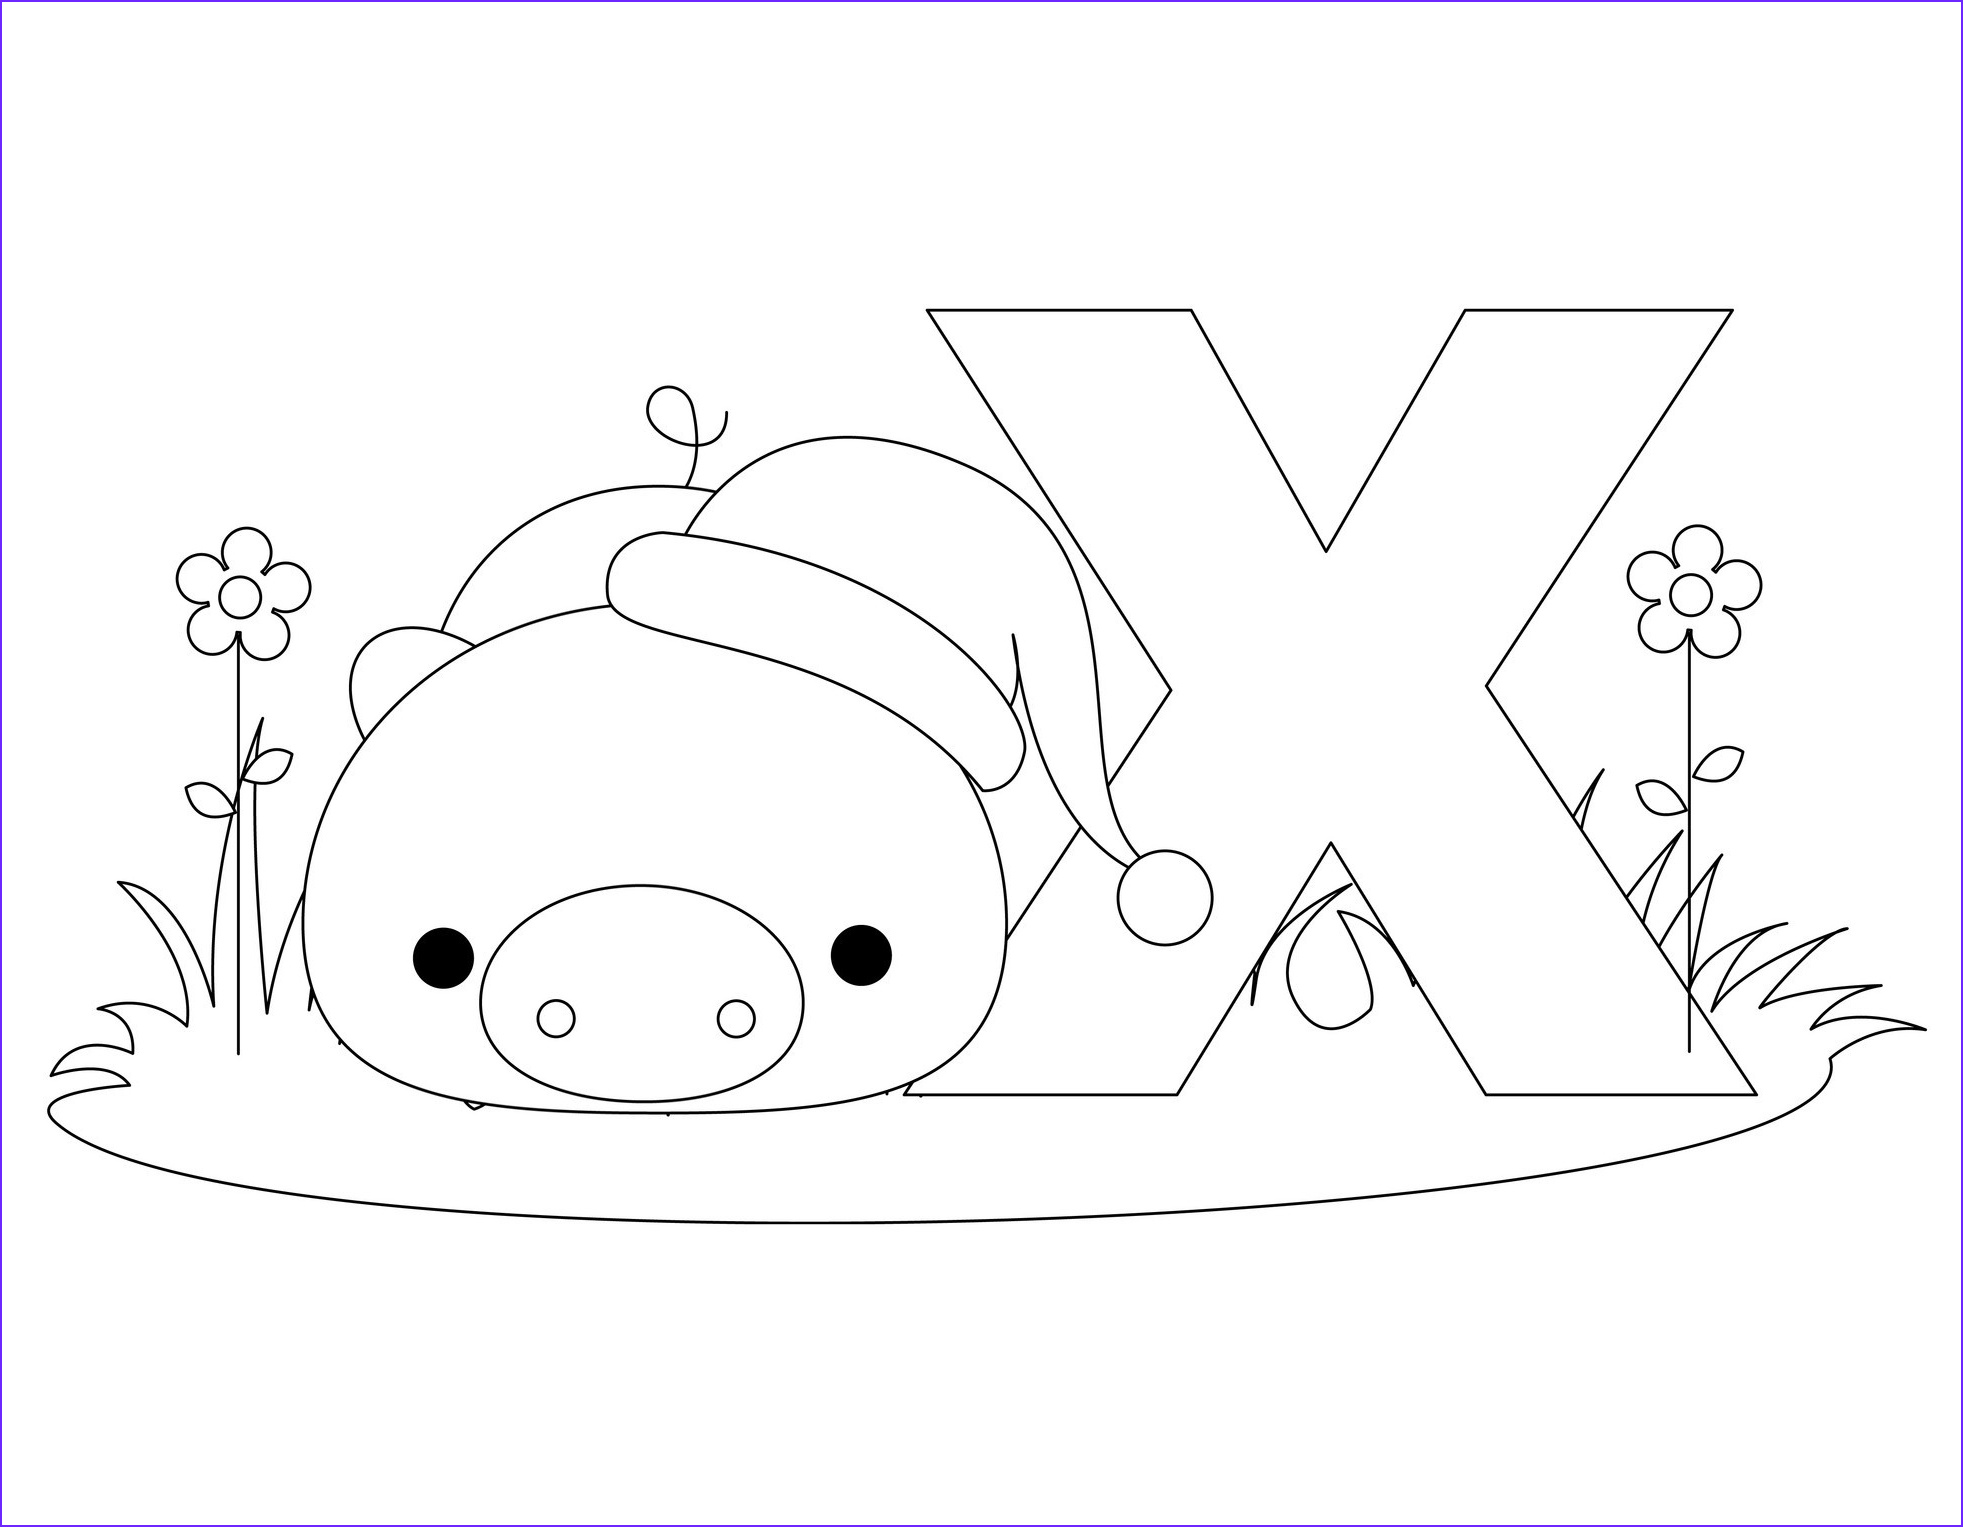 Alphabets Coloring Sheets New Photos Free Printable Alphabet Coloring Pages for Kids Best